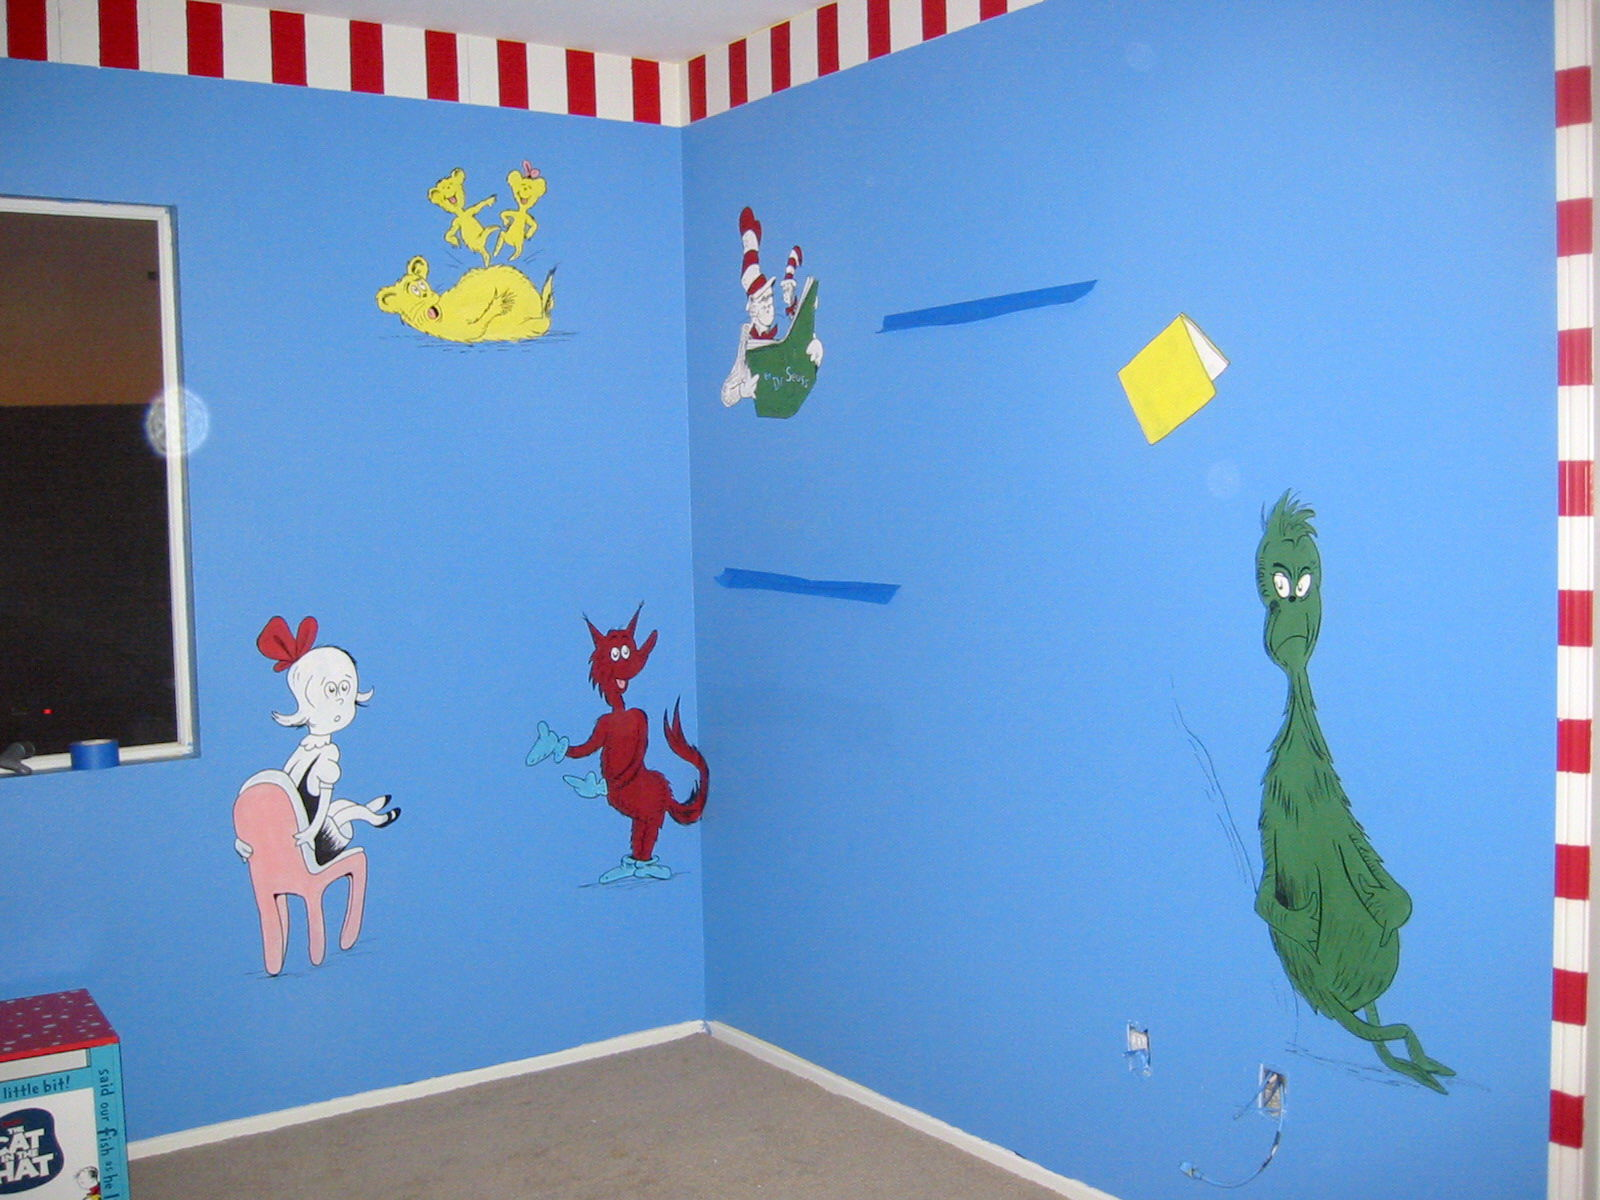 Dr. Suess and friends